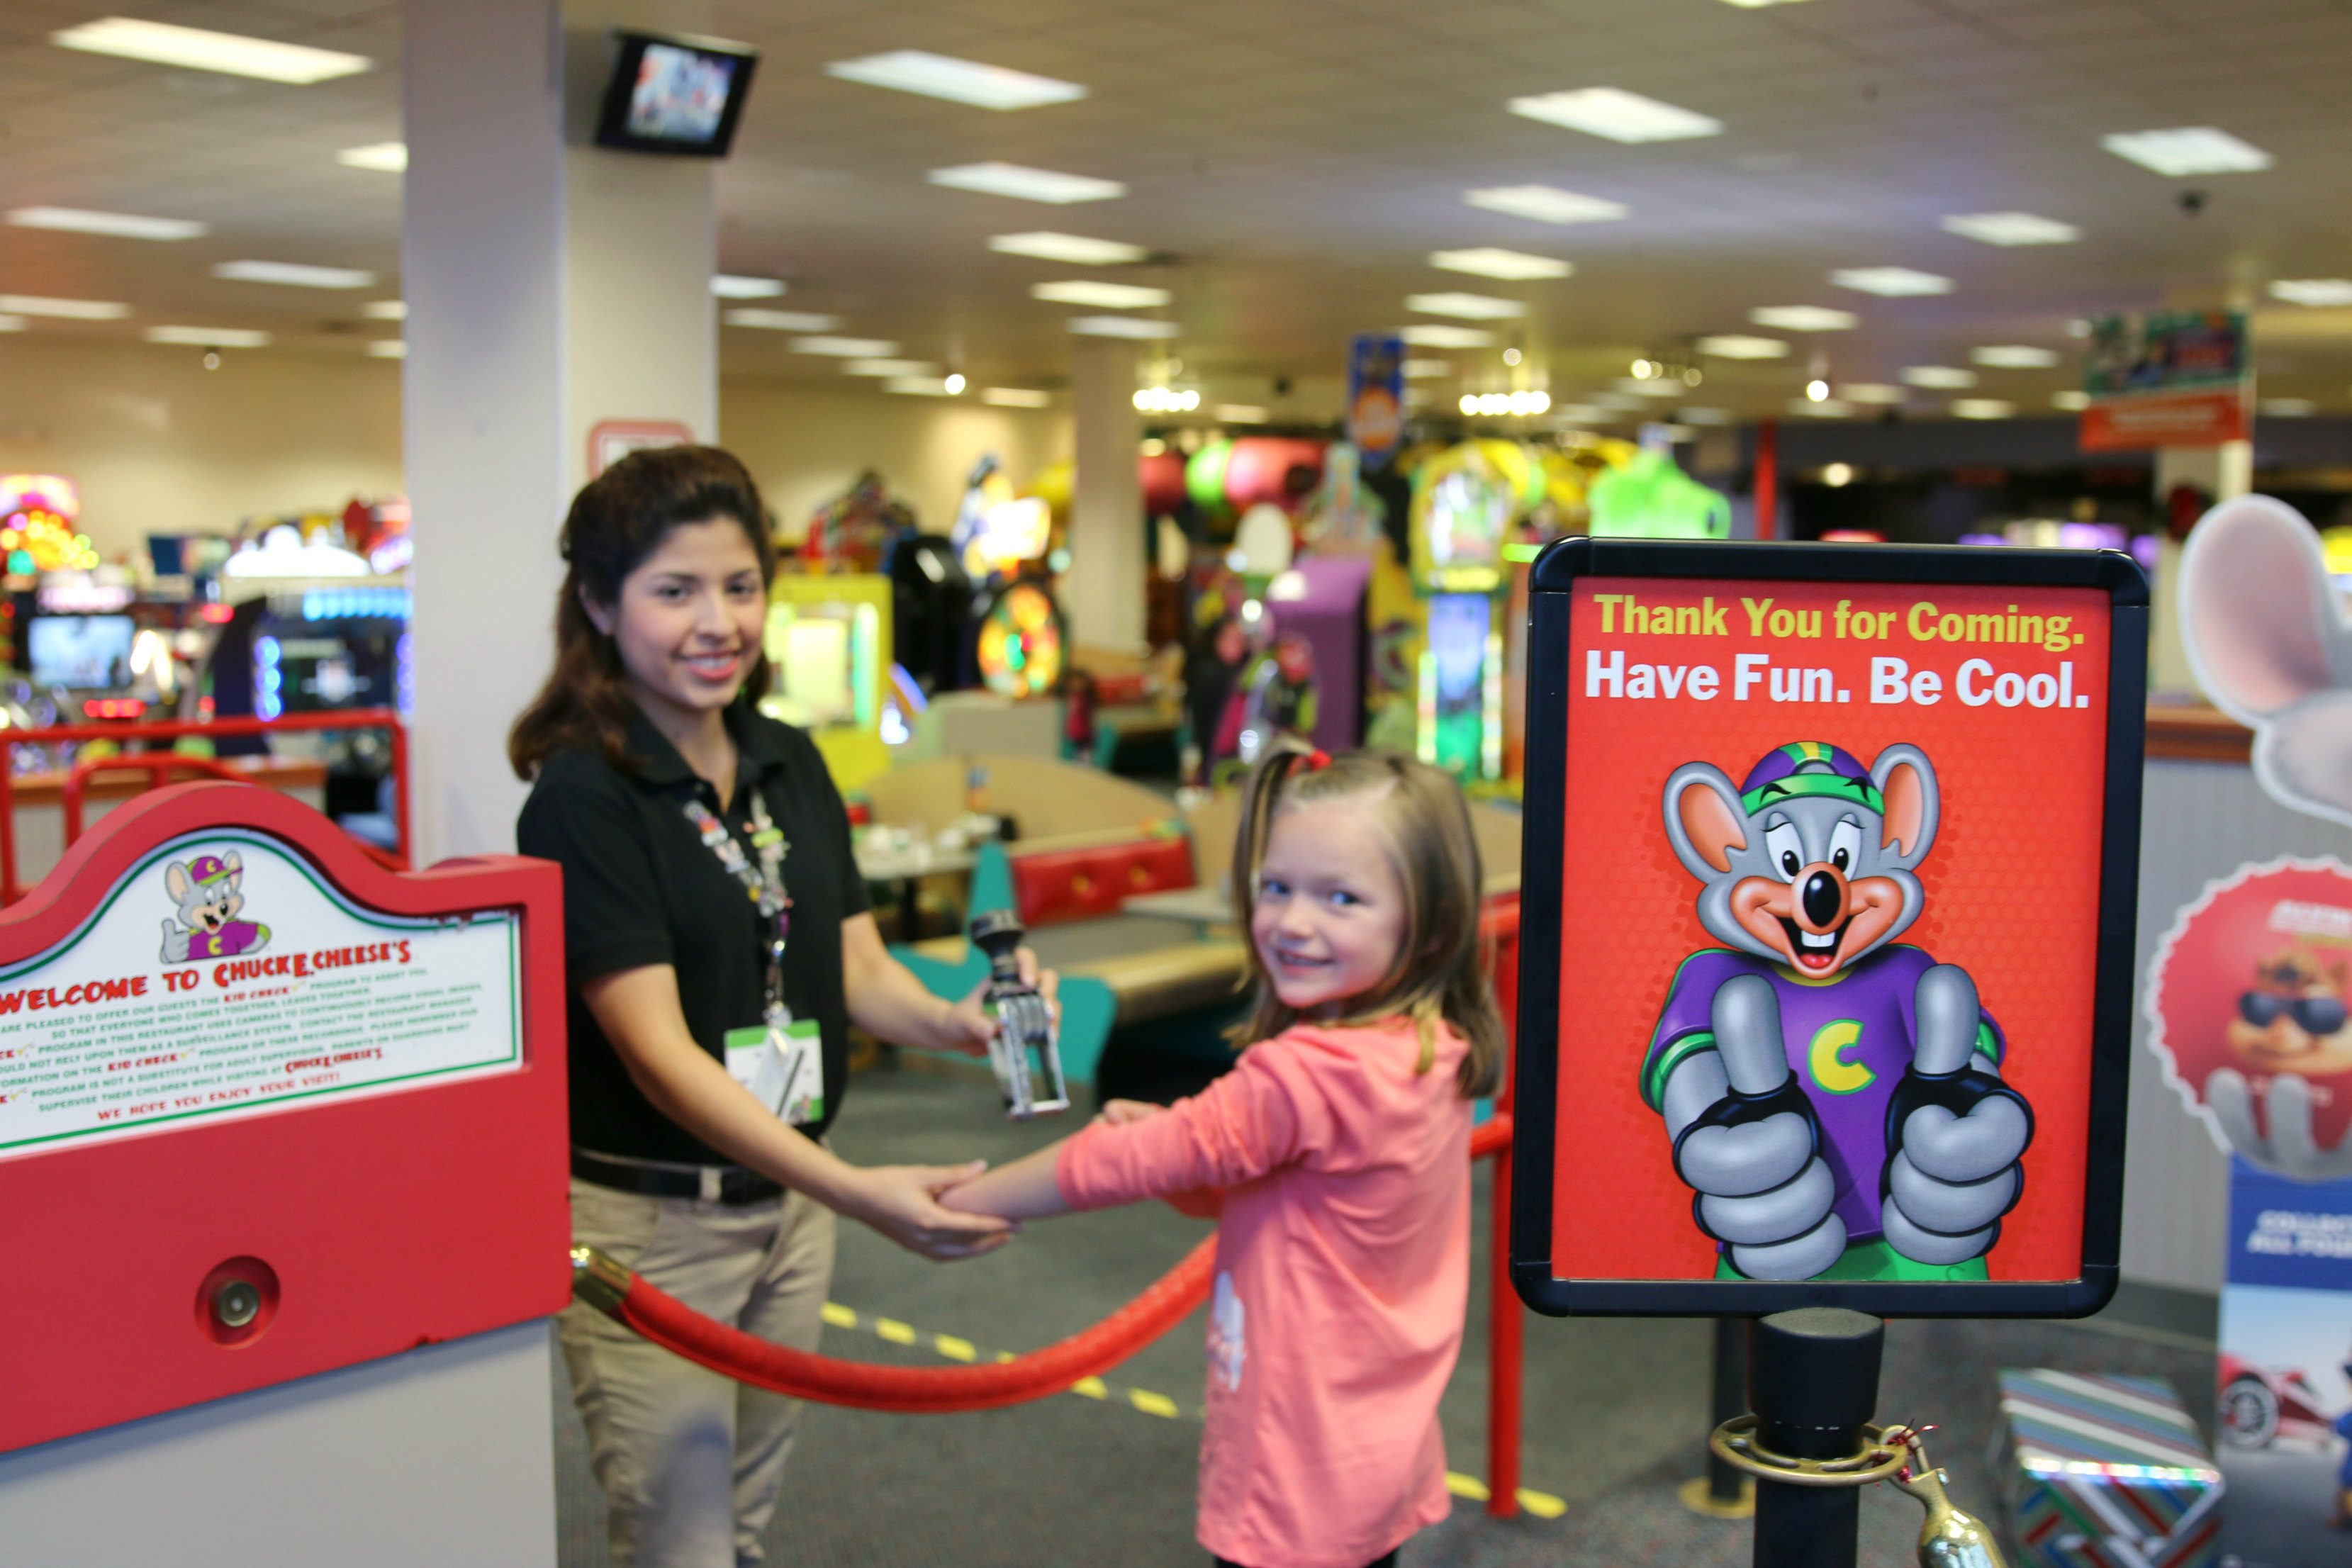 Chuck E Cheese: The Easiest Birthday Party Ever At Chuck E. Cheese's